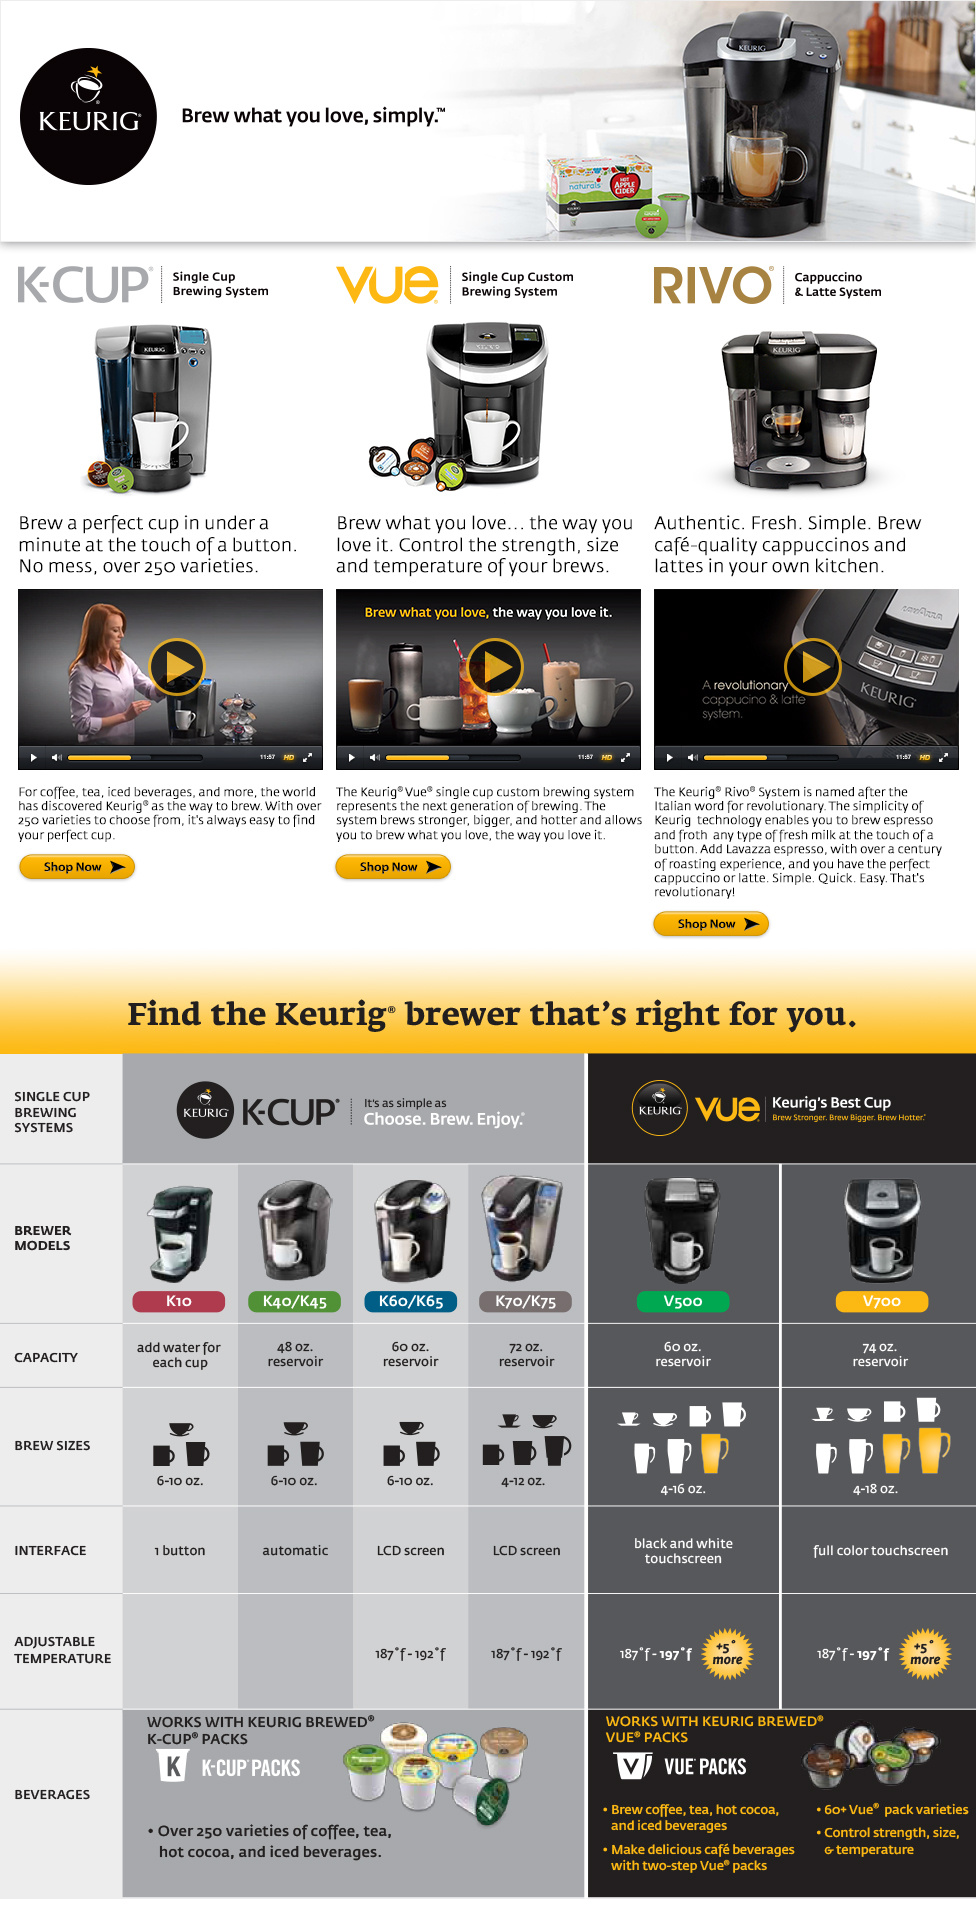 The k cup does a smaller cup of coffee waste a pod brew edition